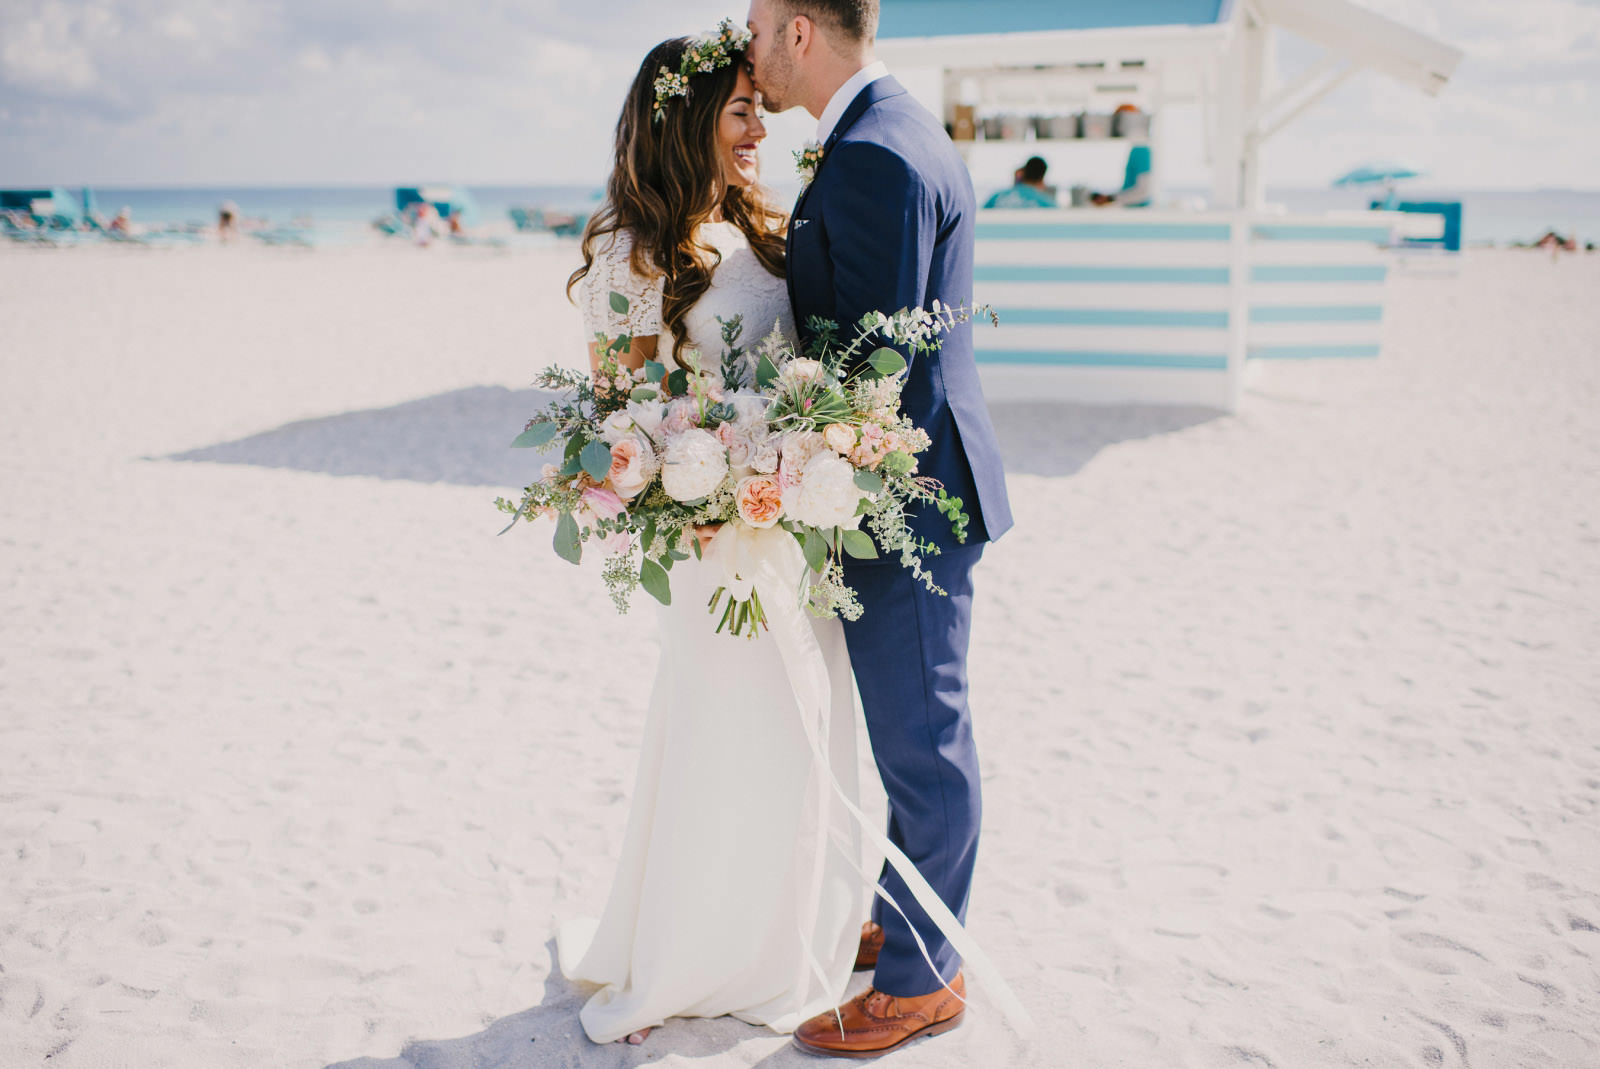 Wedding Photography Miami Beach: Tropical Rustic Beach Wedding At The Palms Hotel In Miami